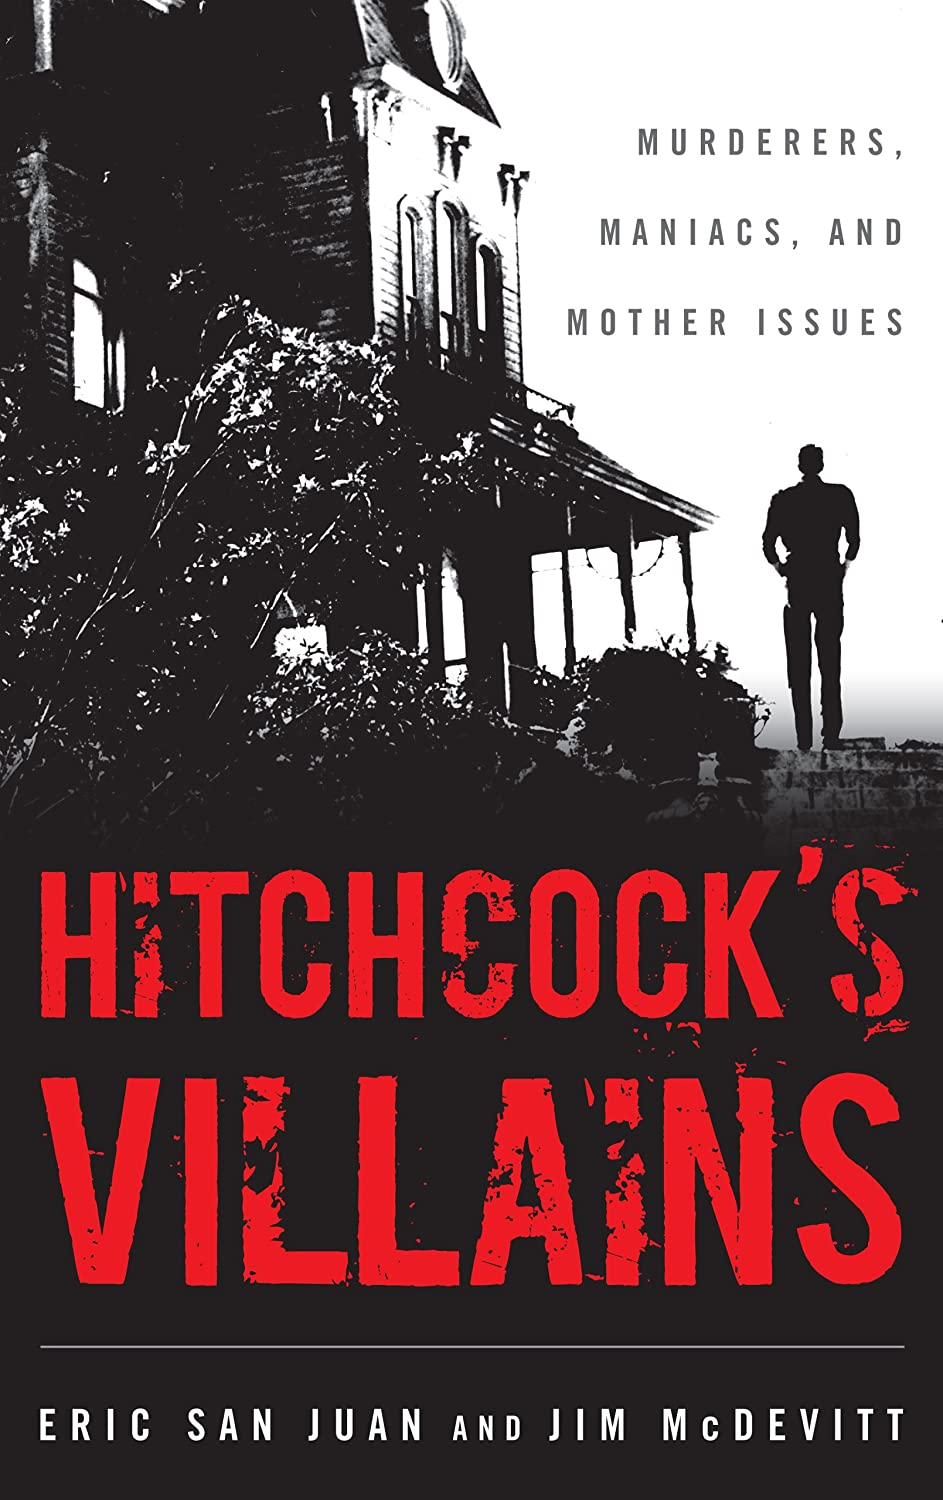 Hitchcock's Villains